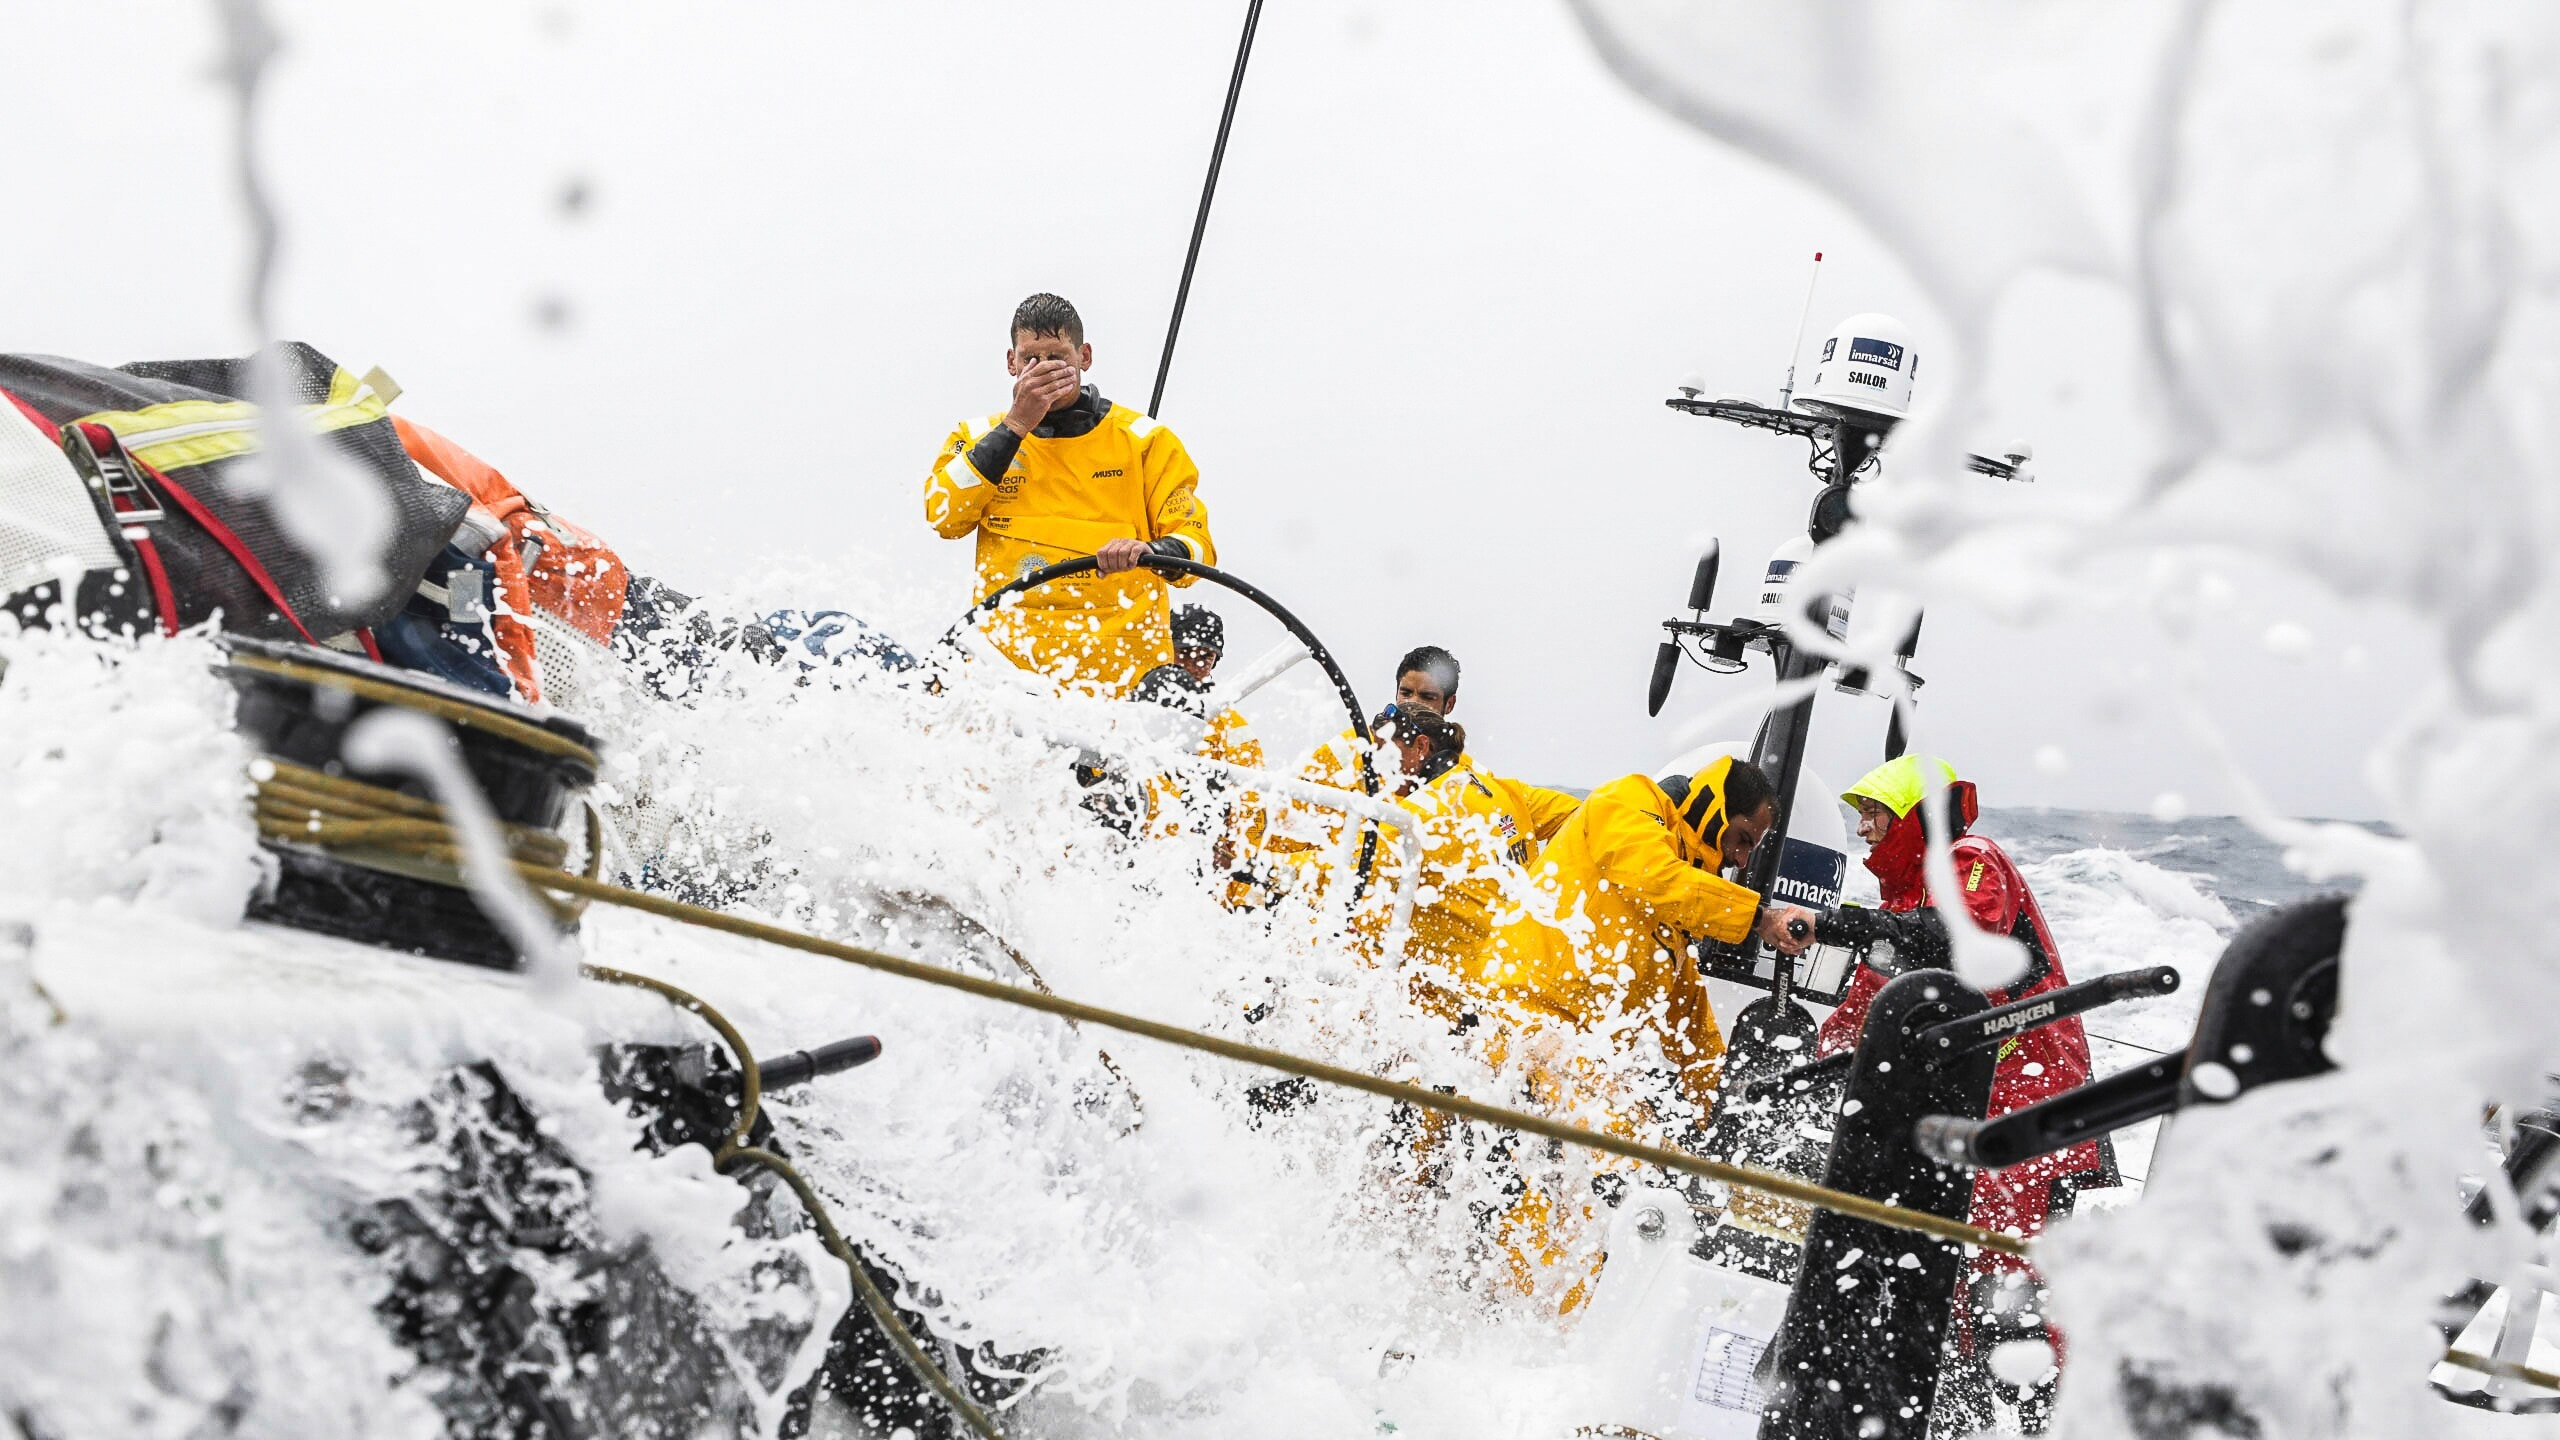 A crew at work in stormy seas, with waves crashing over the deck